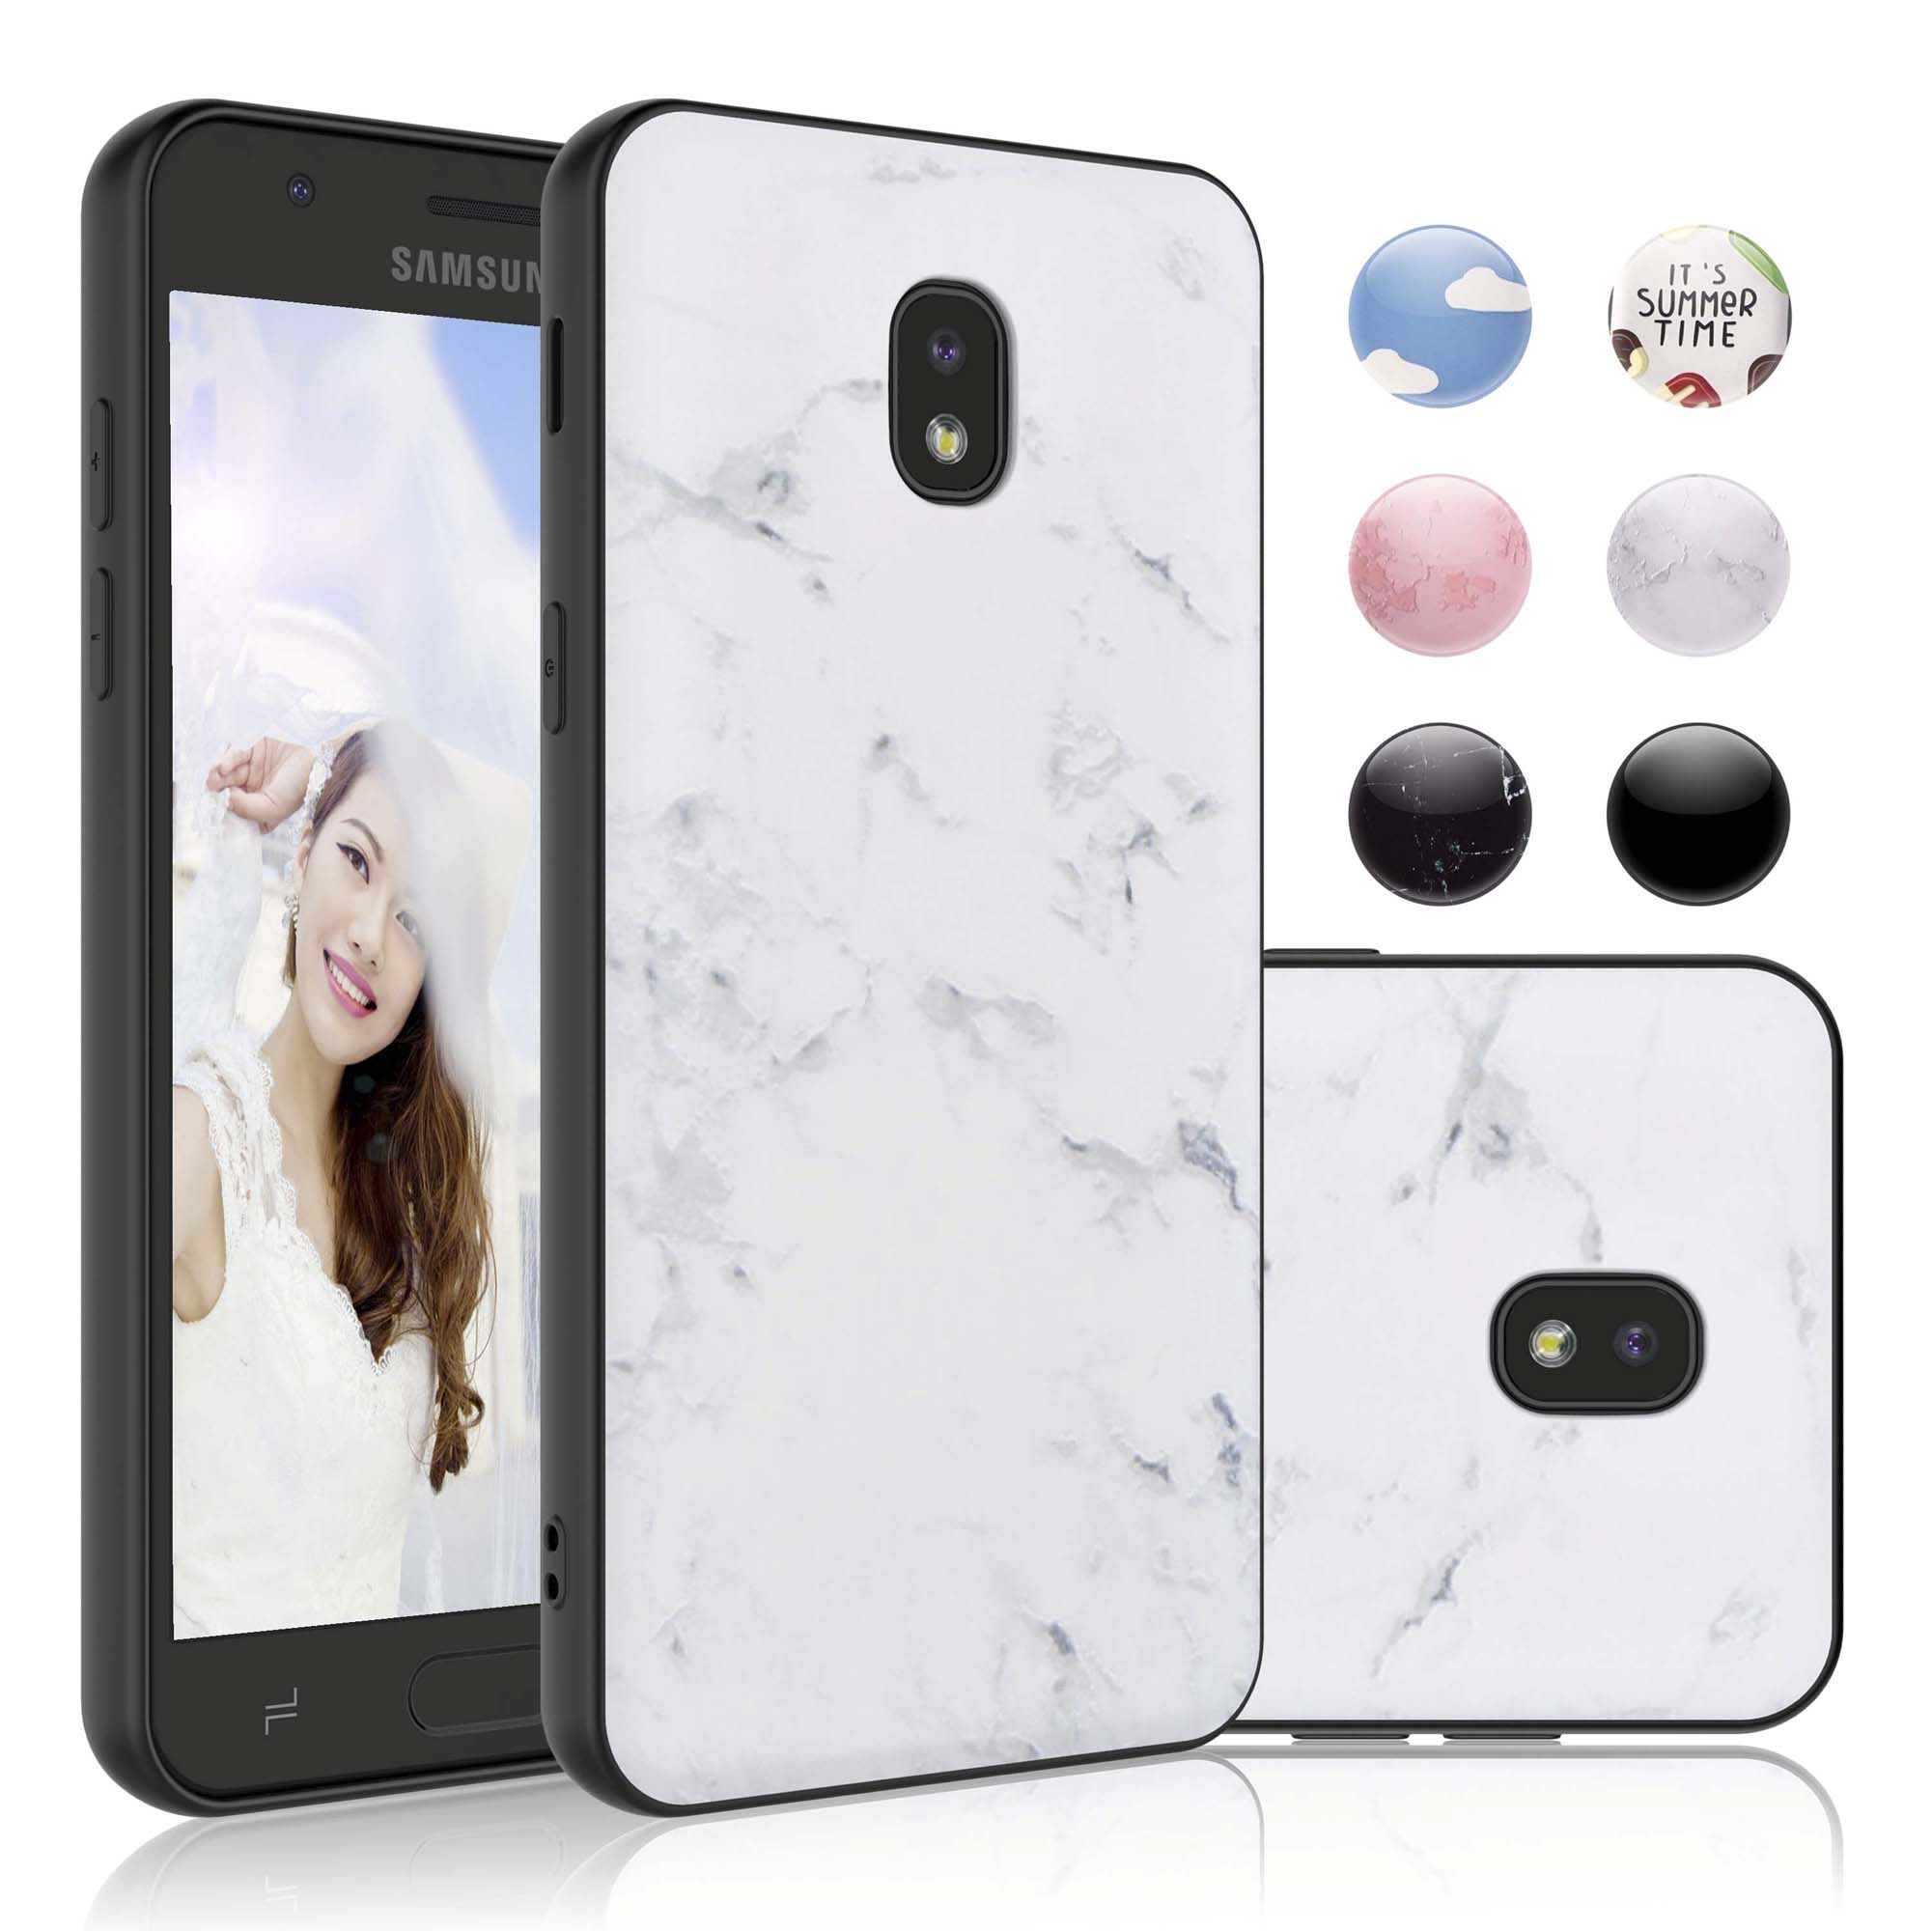 Njjex Case For Samsung Galaxy J7 2018 / J7 Refine / J7 Aero / J7 Aura / J7 Crown / J7 Top / J7 Eon / J7 Star, Slim-Fit Drop Protection Protective TPU Case Marble Design -White Marble